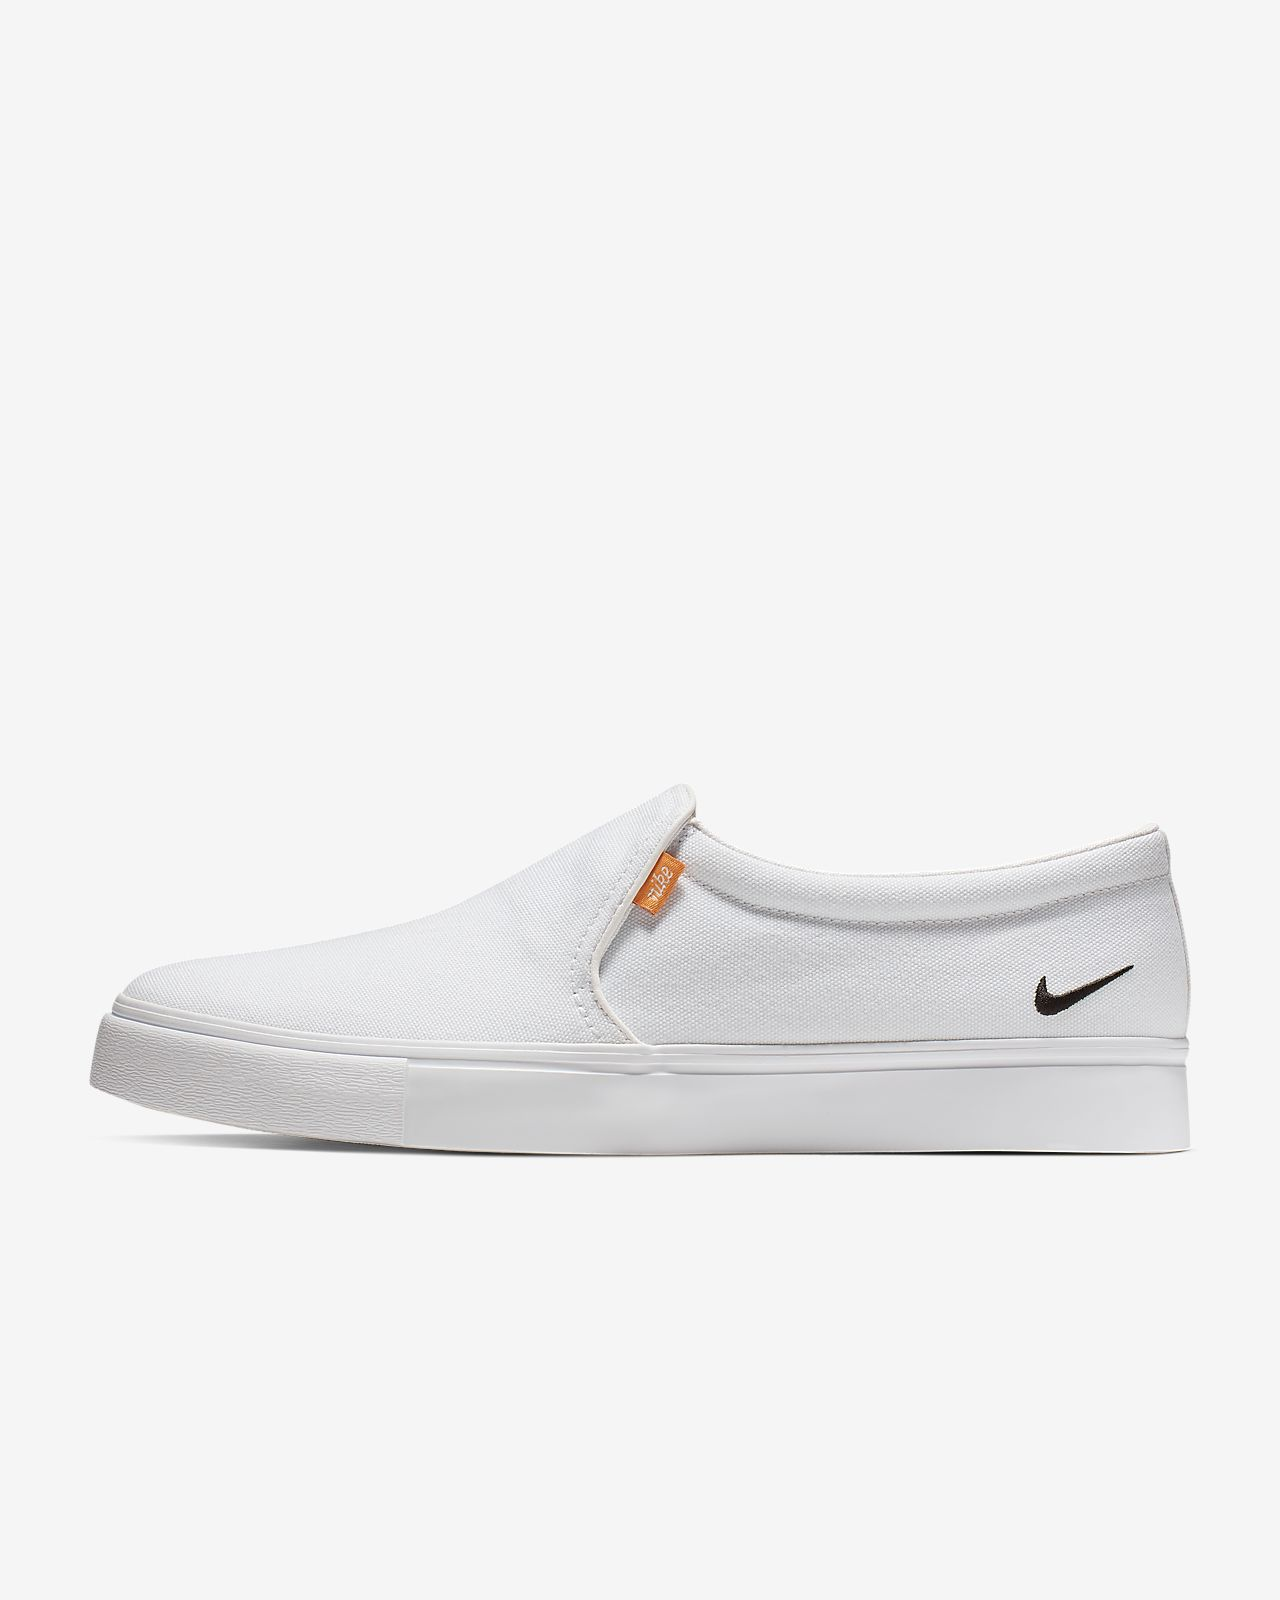 af78f207ff1 NikeCourt Royale AC Men's Slip-On Shoe. Nike.com